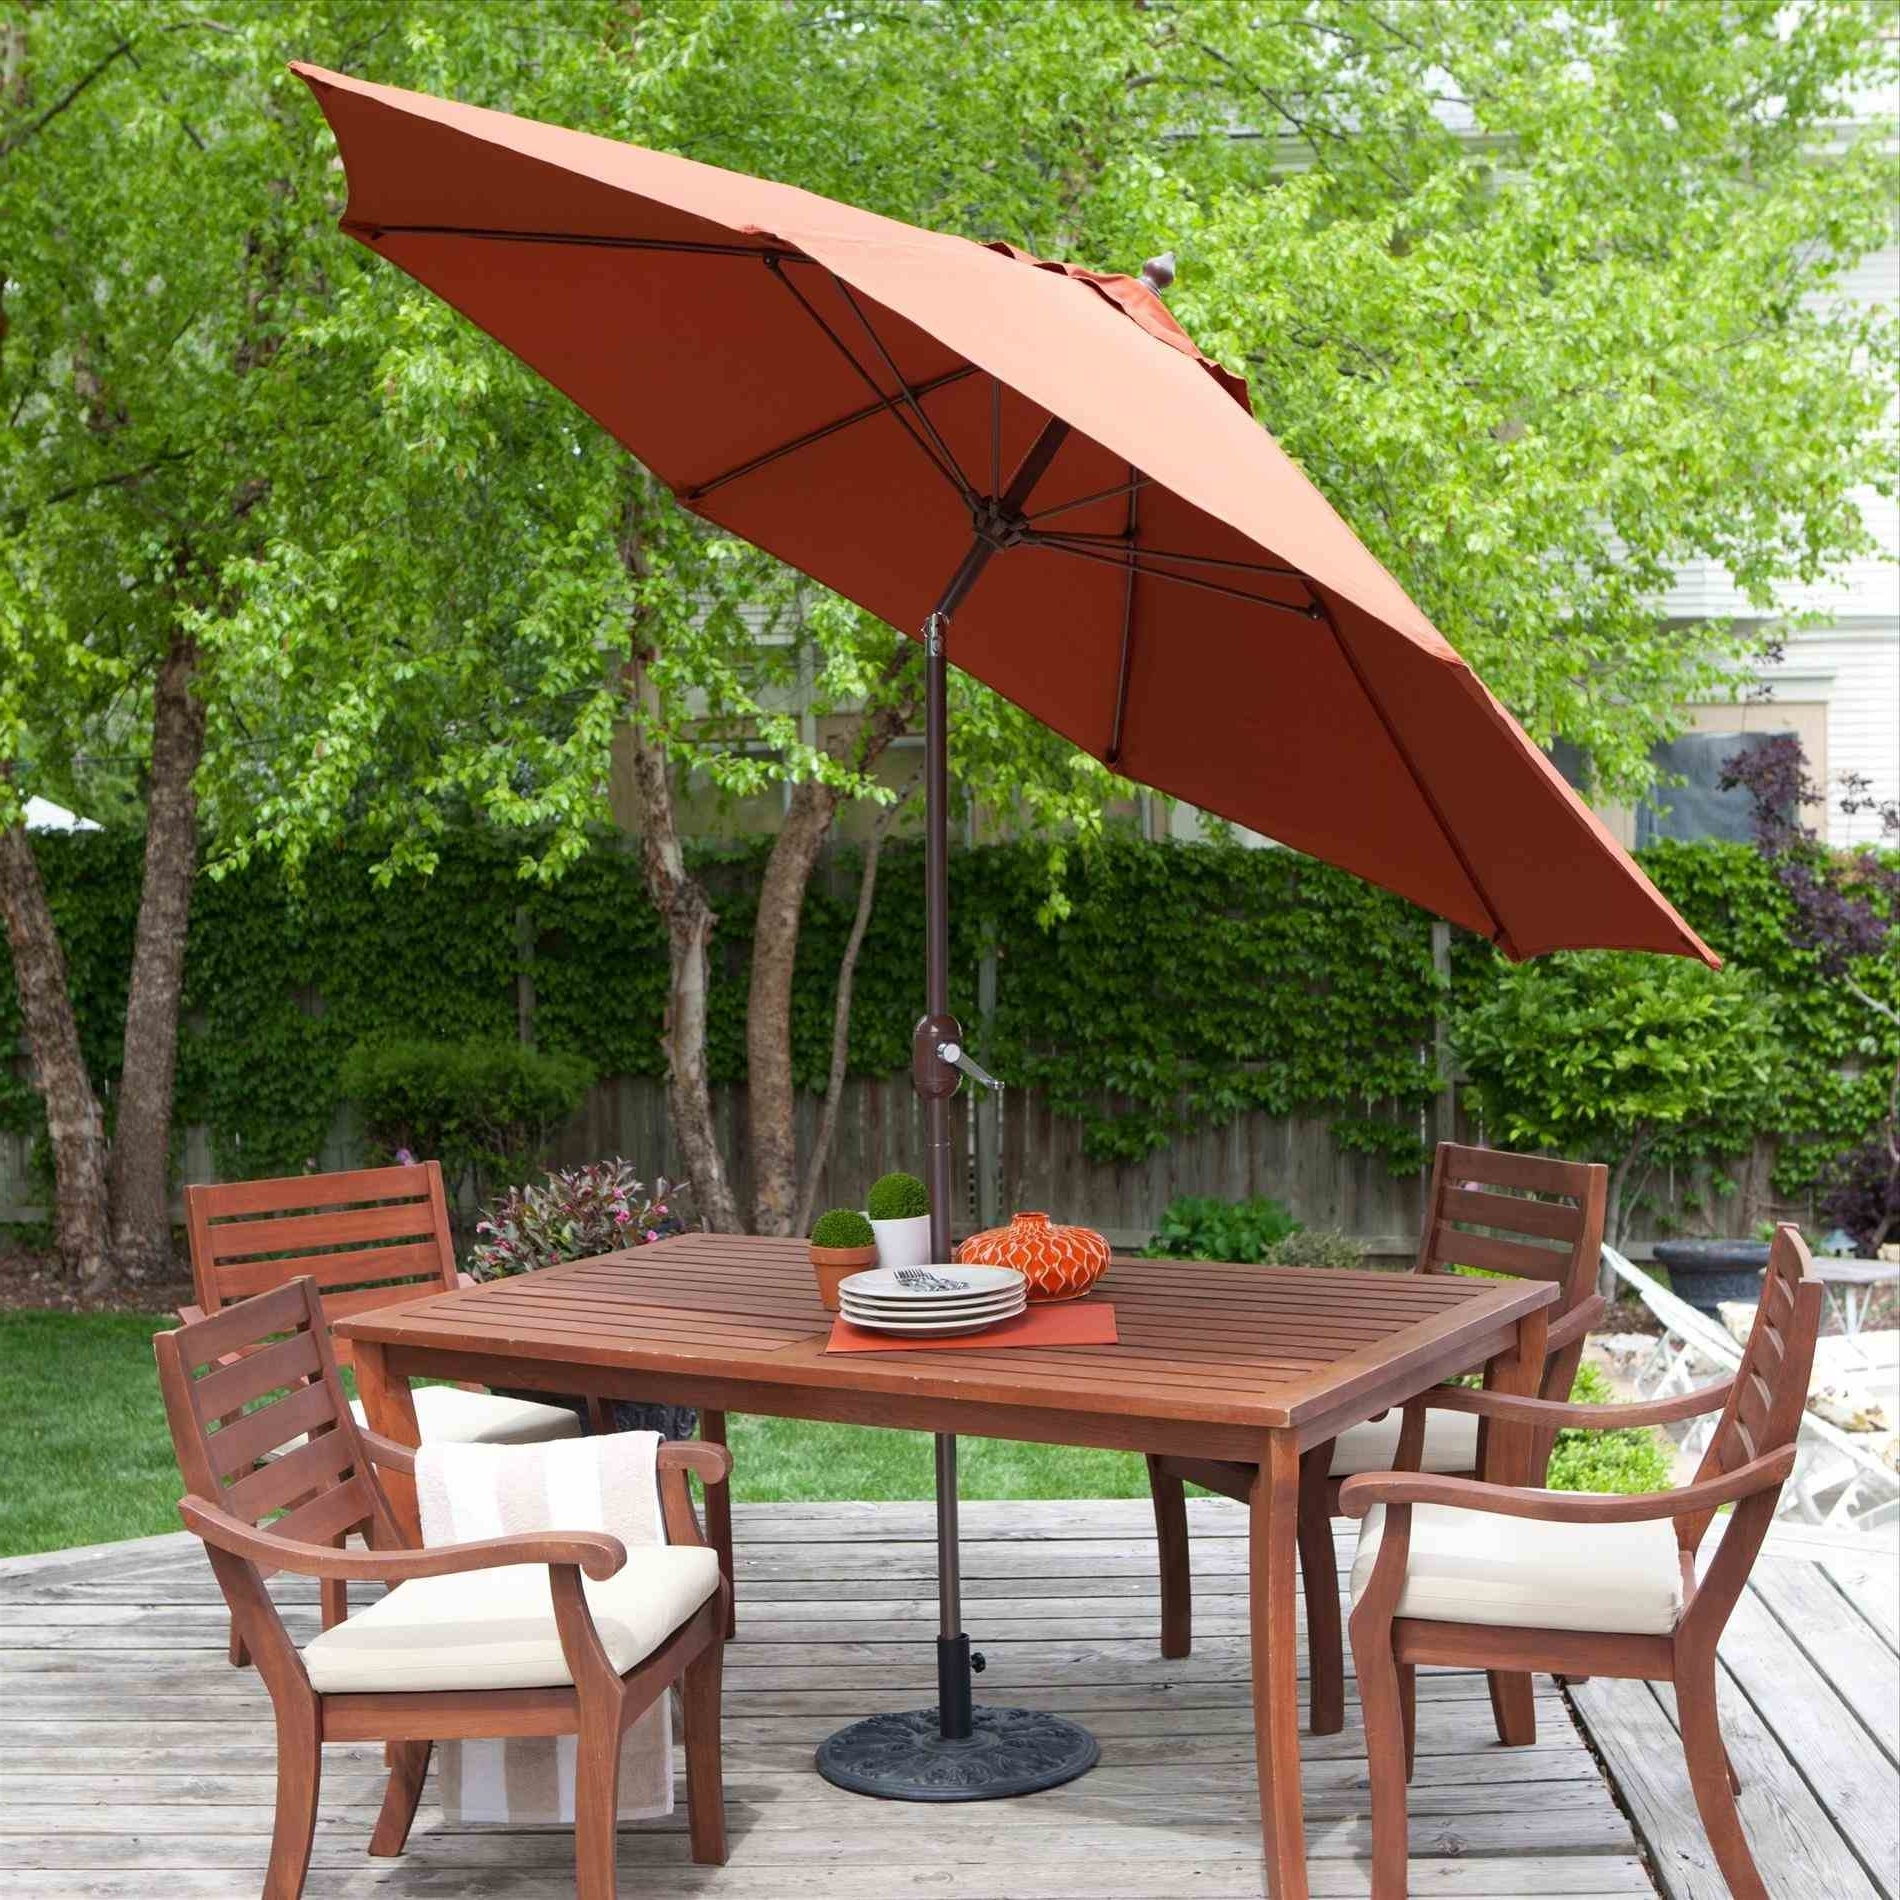 Small Patio Umbrellas Regarding Well Known Small Patio Umbrella Part 2 Outdoor Umbrellas – Theestatesga (View 17 of 20)